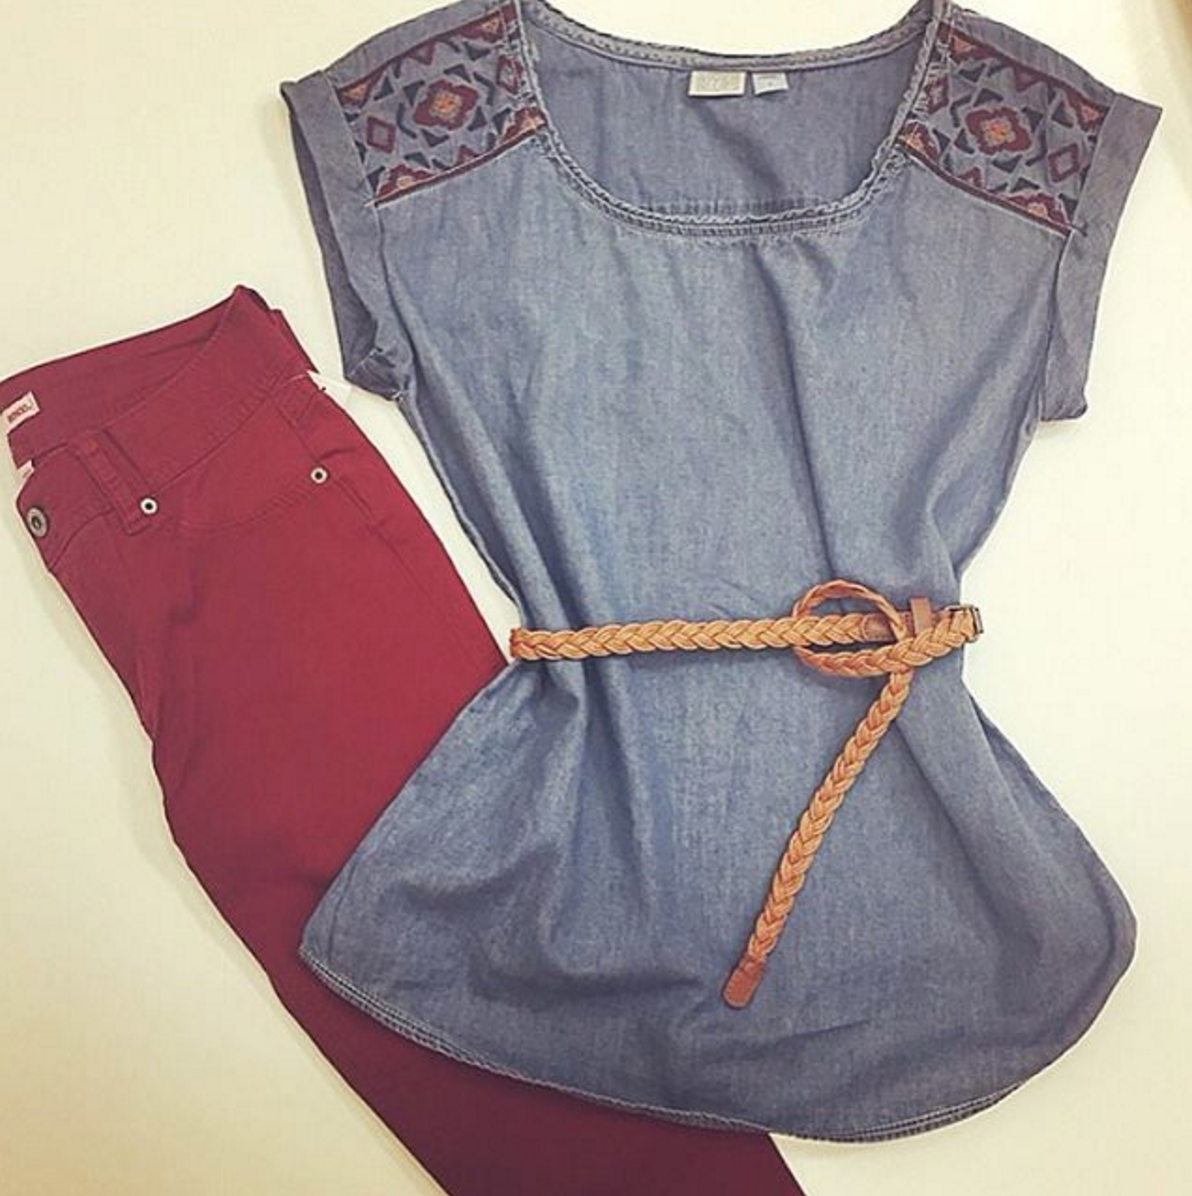 One of our favorite things? New clothes from Canyon River Blues.